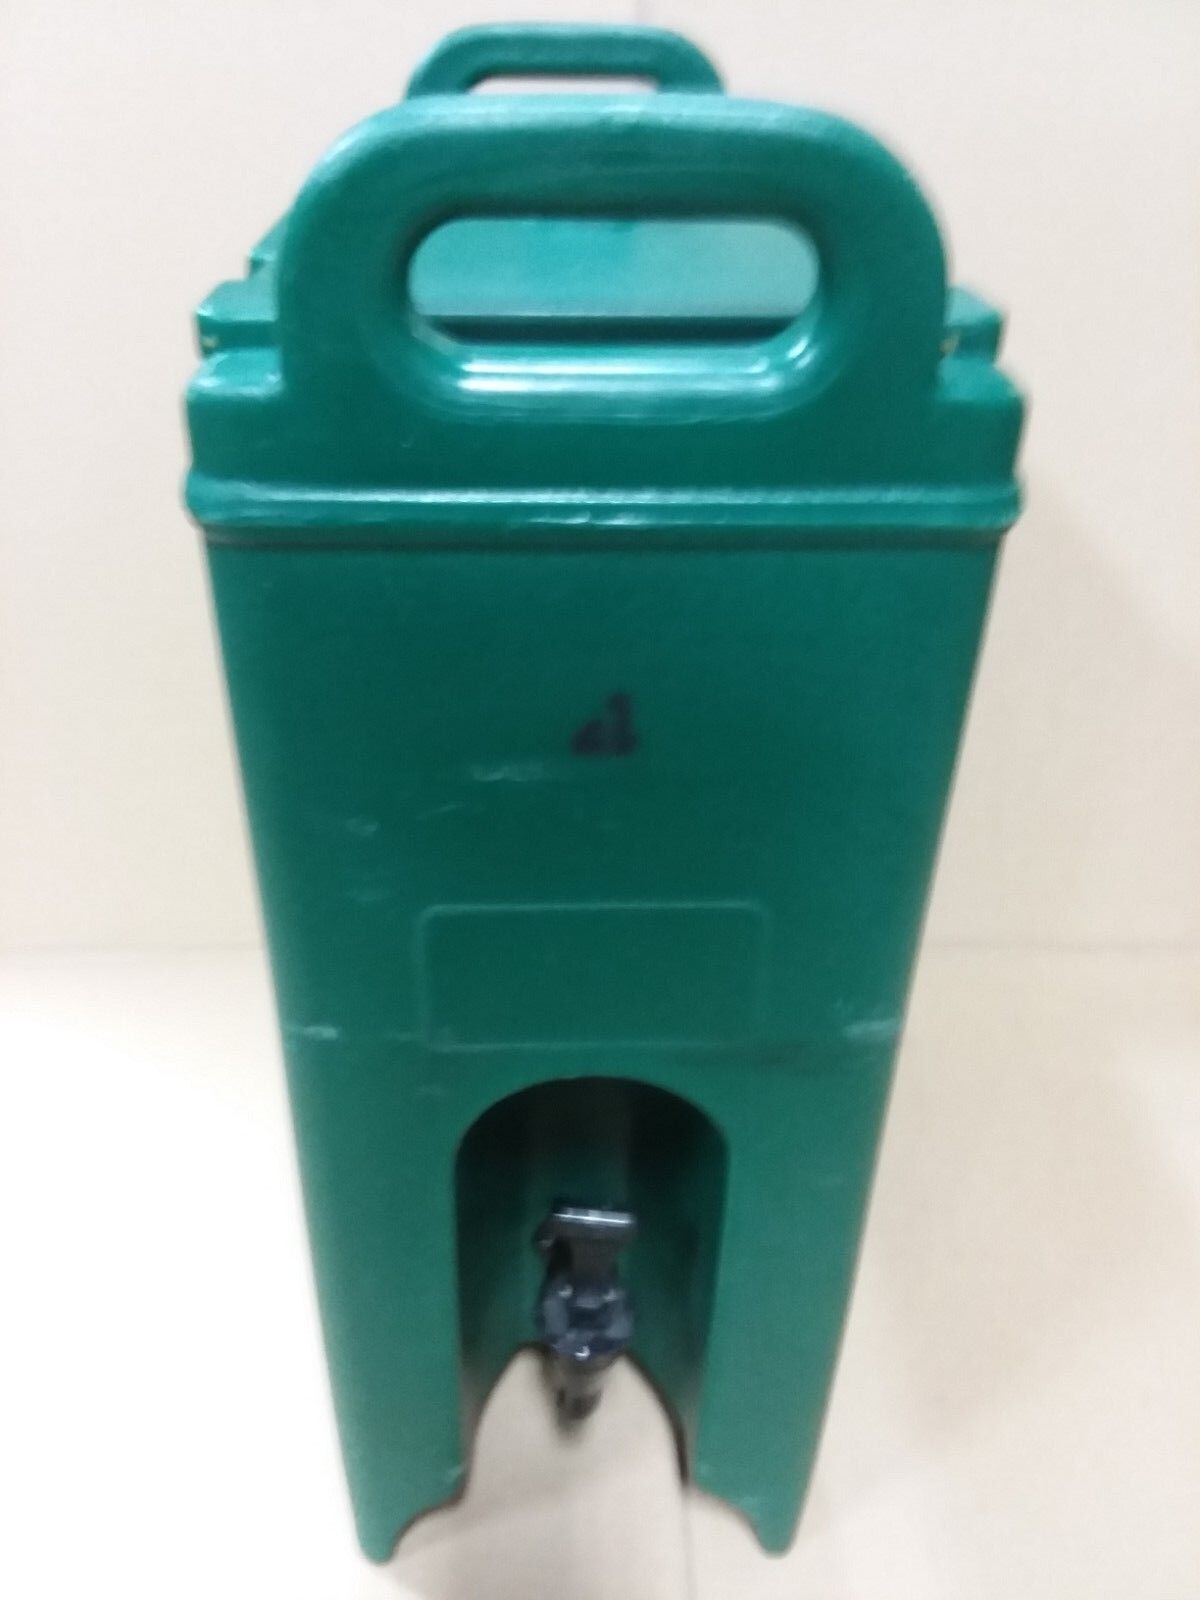 Cambro 500LCD Insulated Beverage Dispenser Surplus Military Military Surplus  Teal color 0d7844